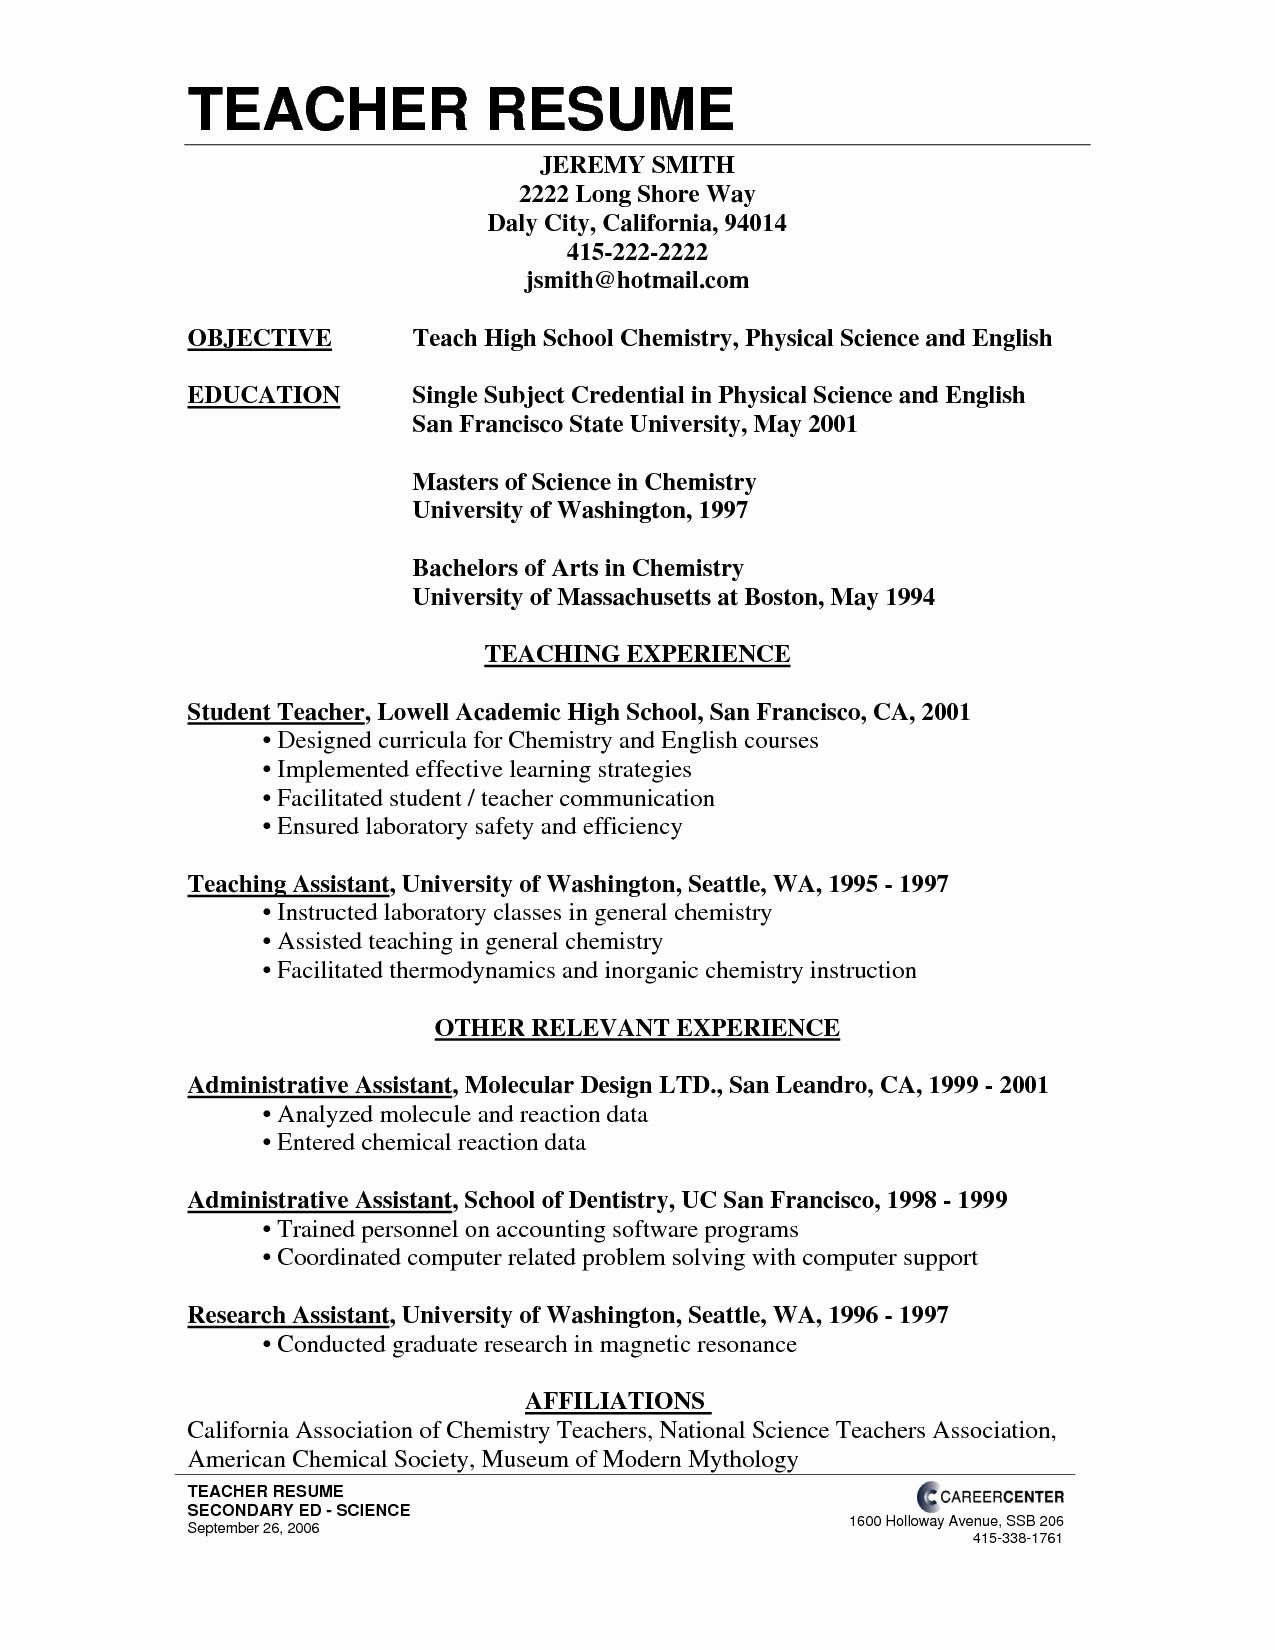 Image Result For Teacher Resume Format Pdf